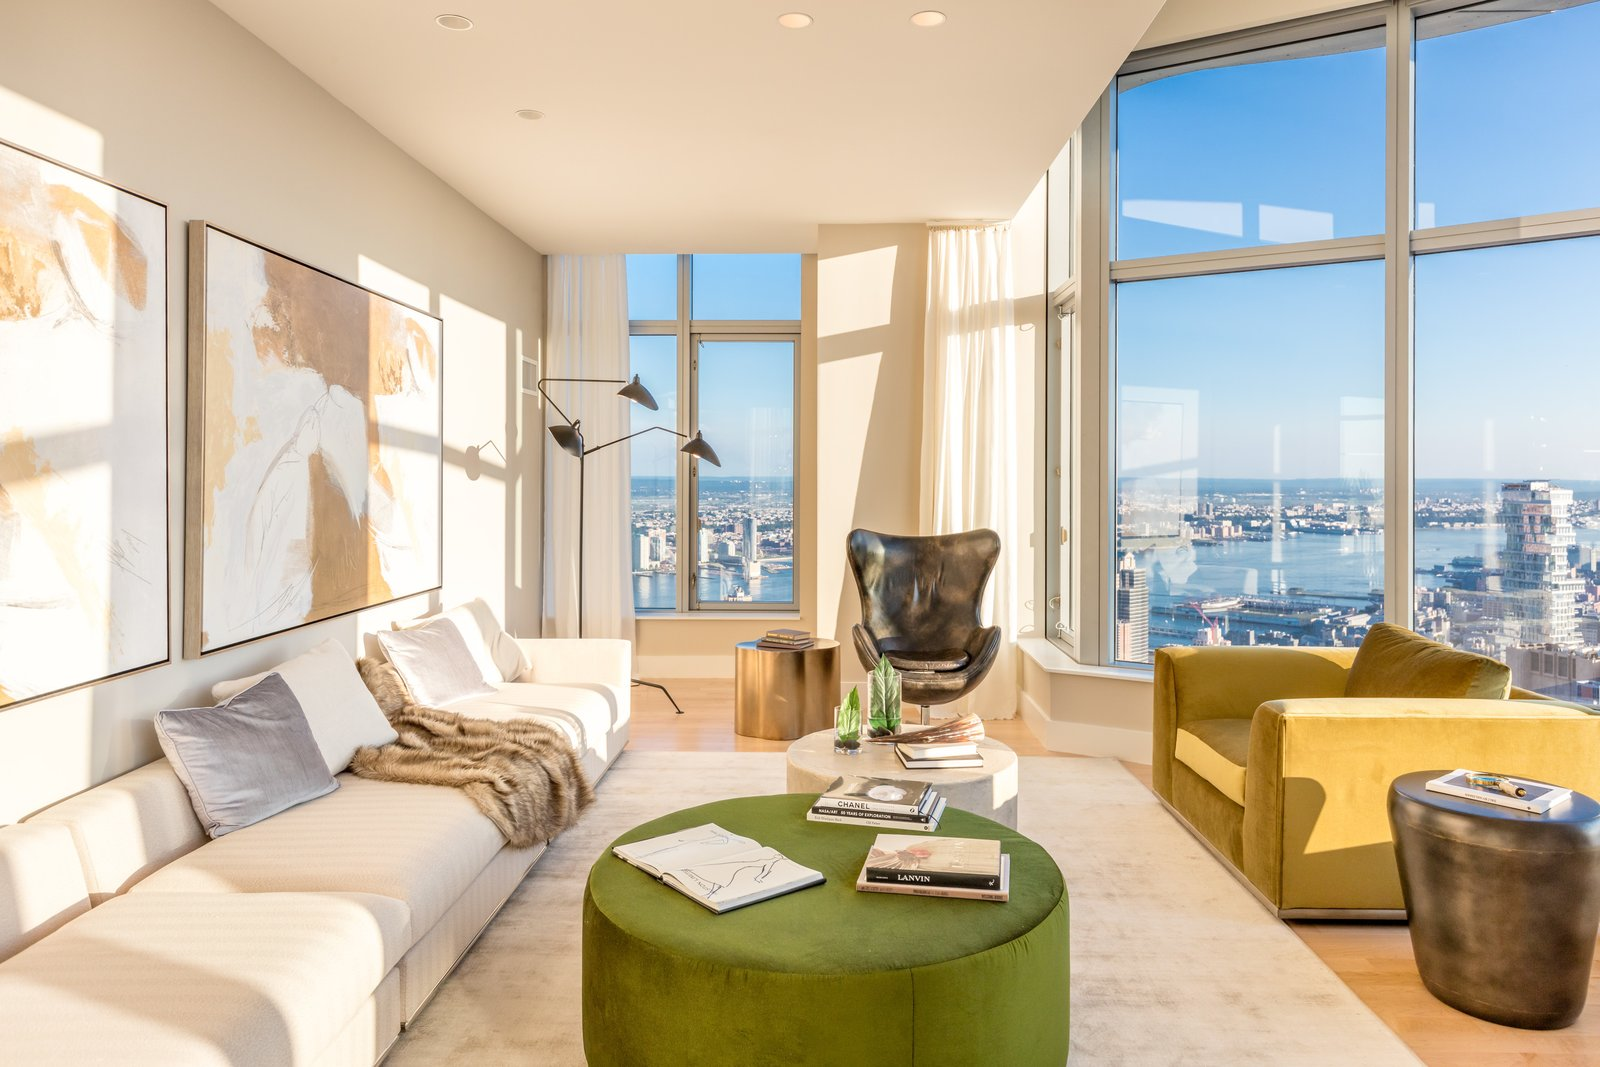 Photo 1 of 9 in Tour This Frank Gehry-Designed Penthouse in NYC That's Back on the Market